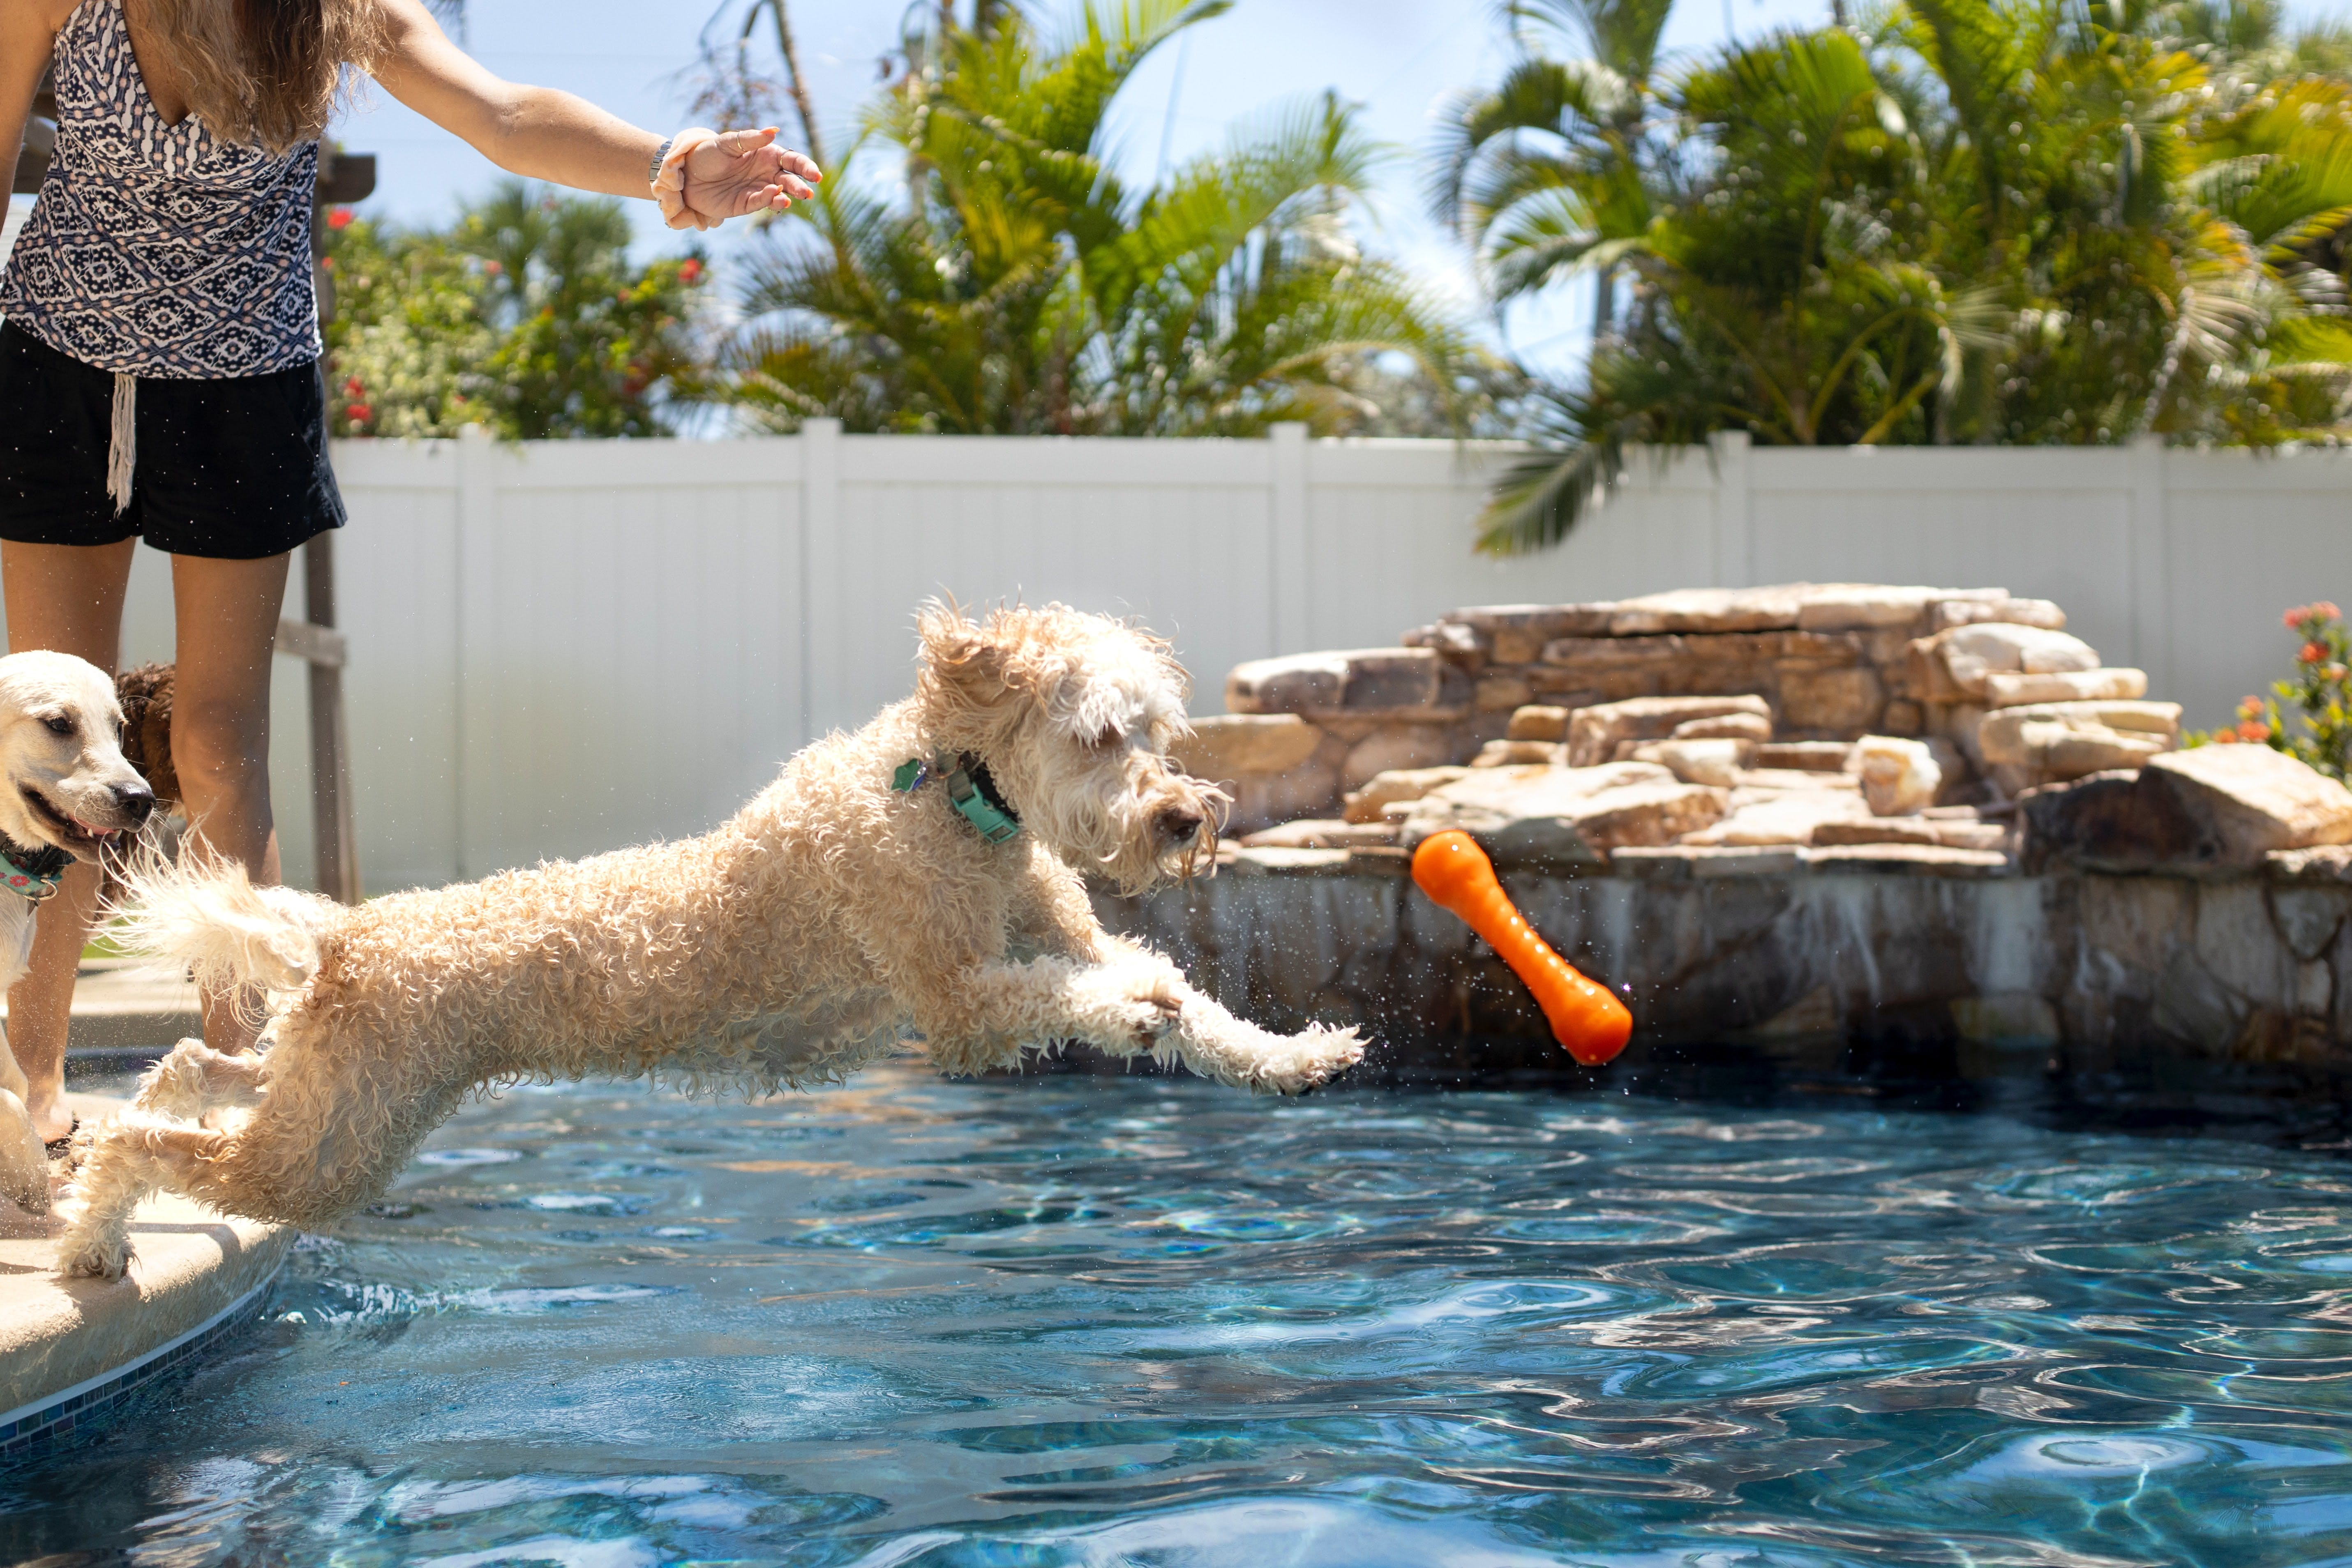 daily-wag-how-to-make-the-best-of-the-dog-days-of-summer-with-your-pup-hero-image